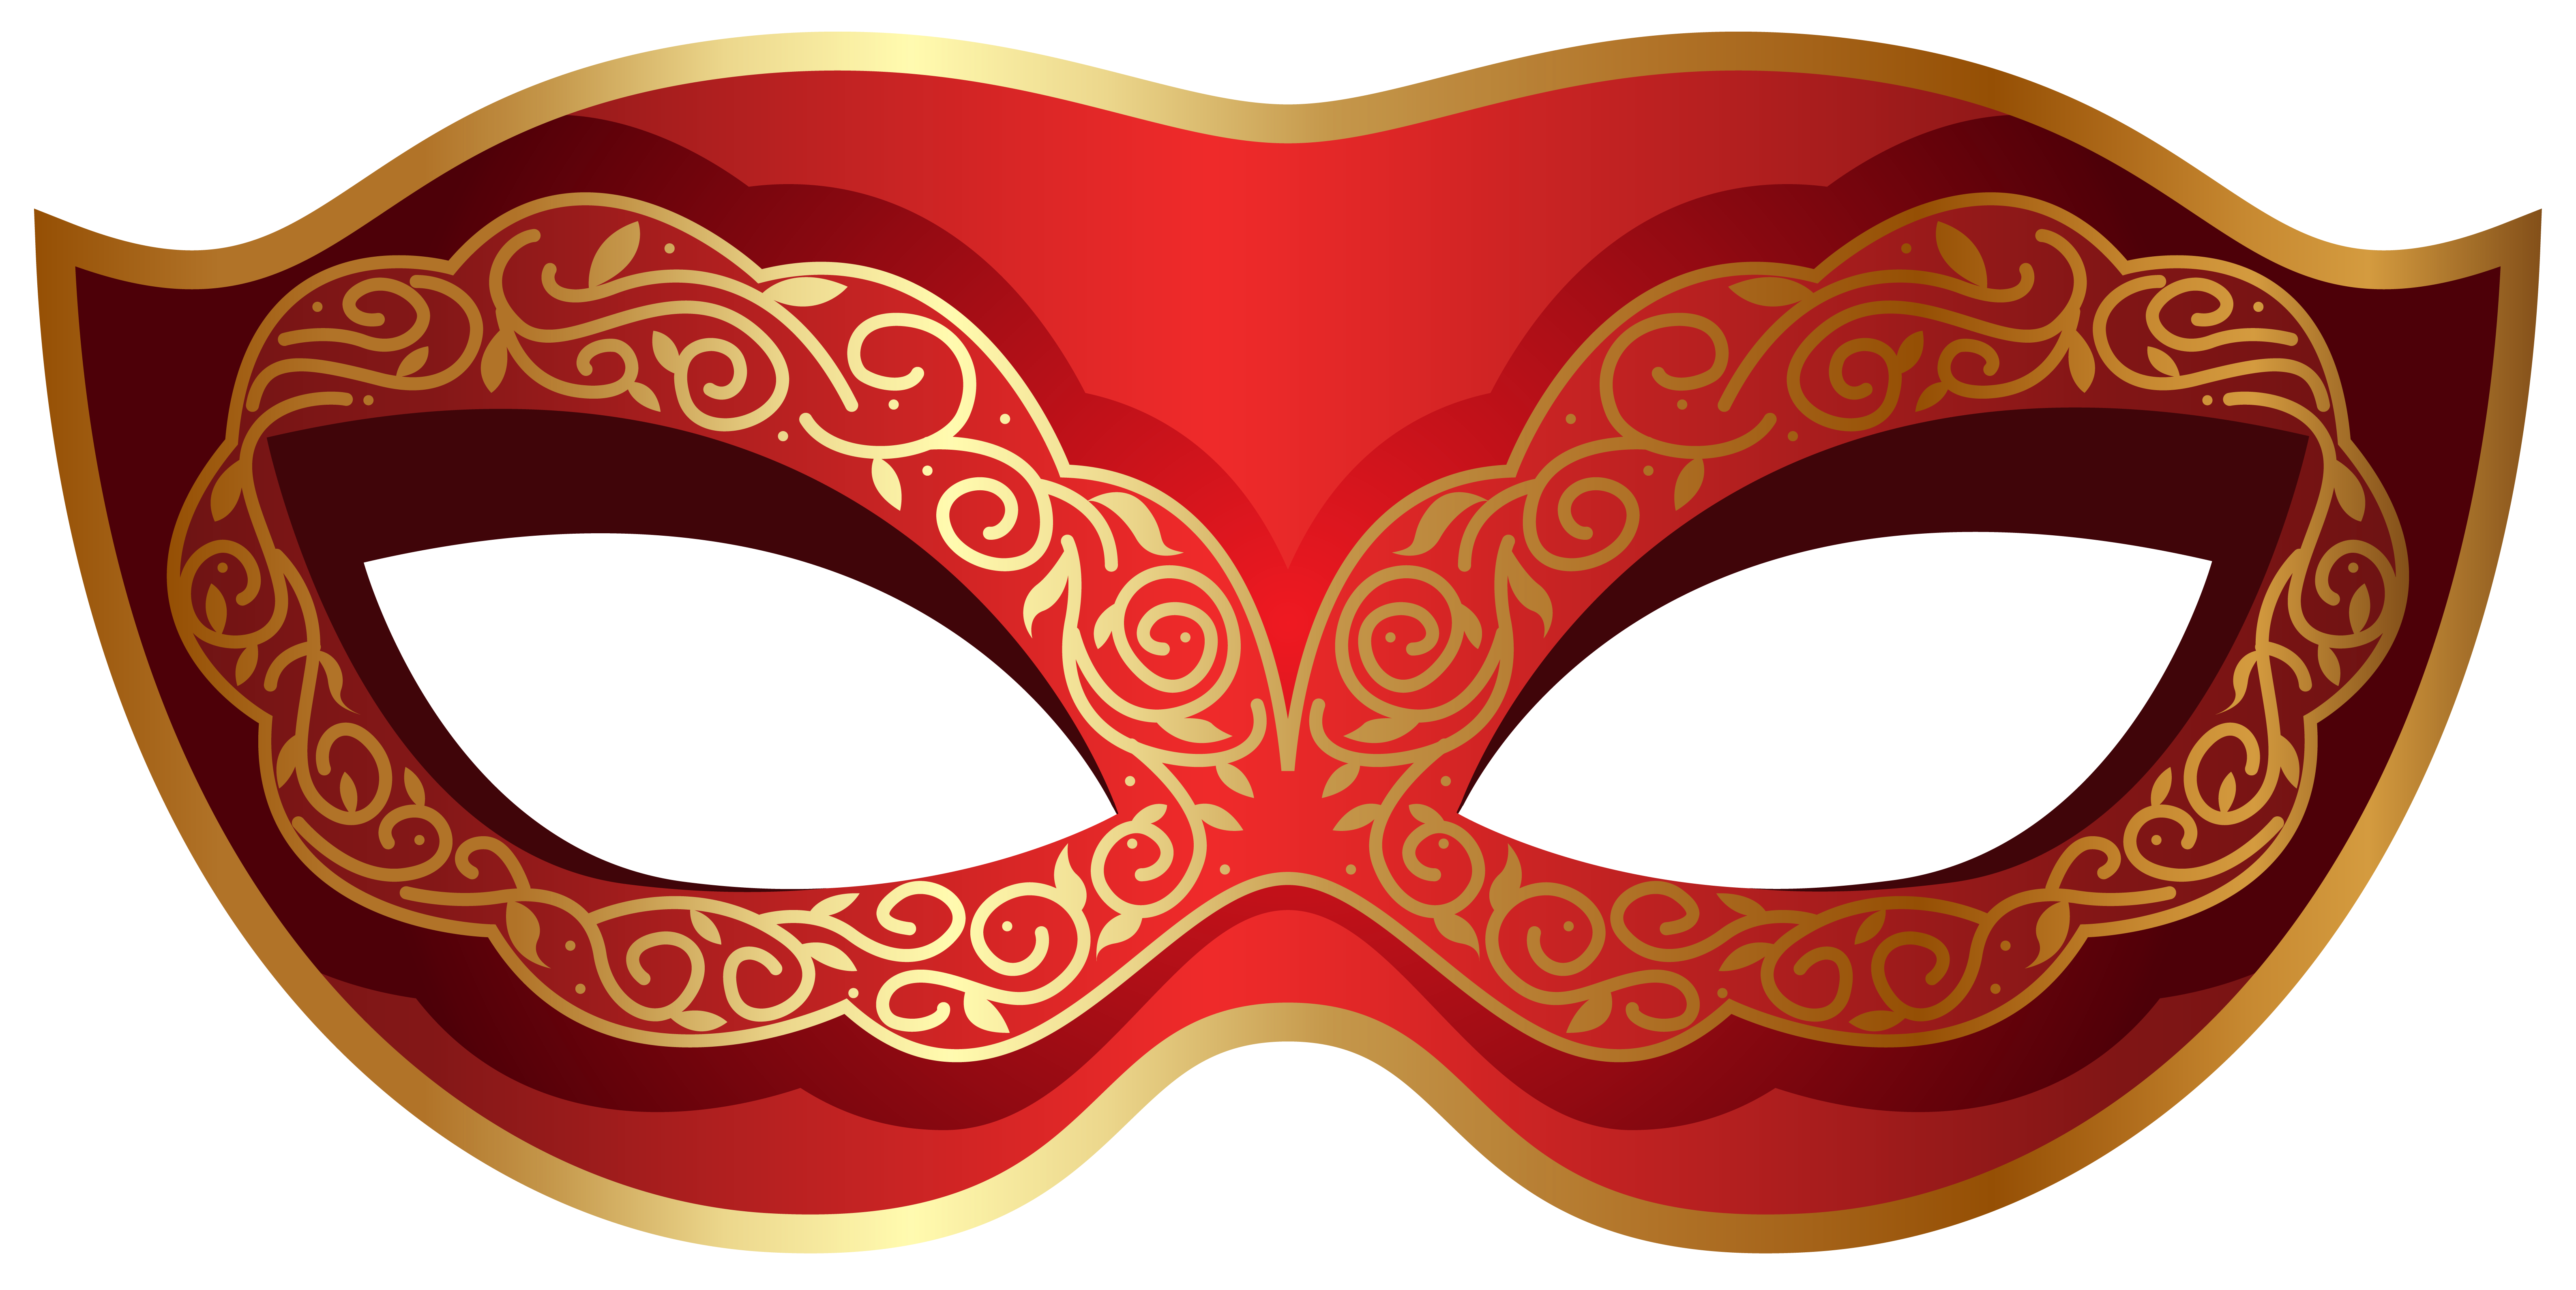 Halloween eye mask clipart clipart transparent stock 28+ Collection of Red Masquerade Mask Clipart   High quality, free ... clipart transparent stock